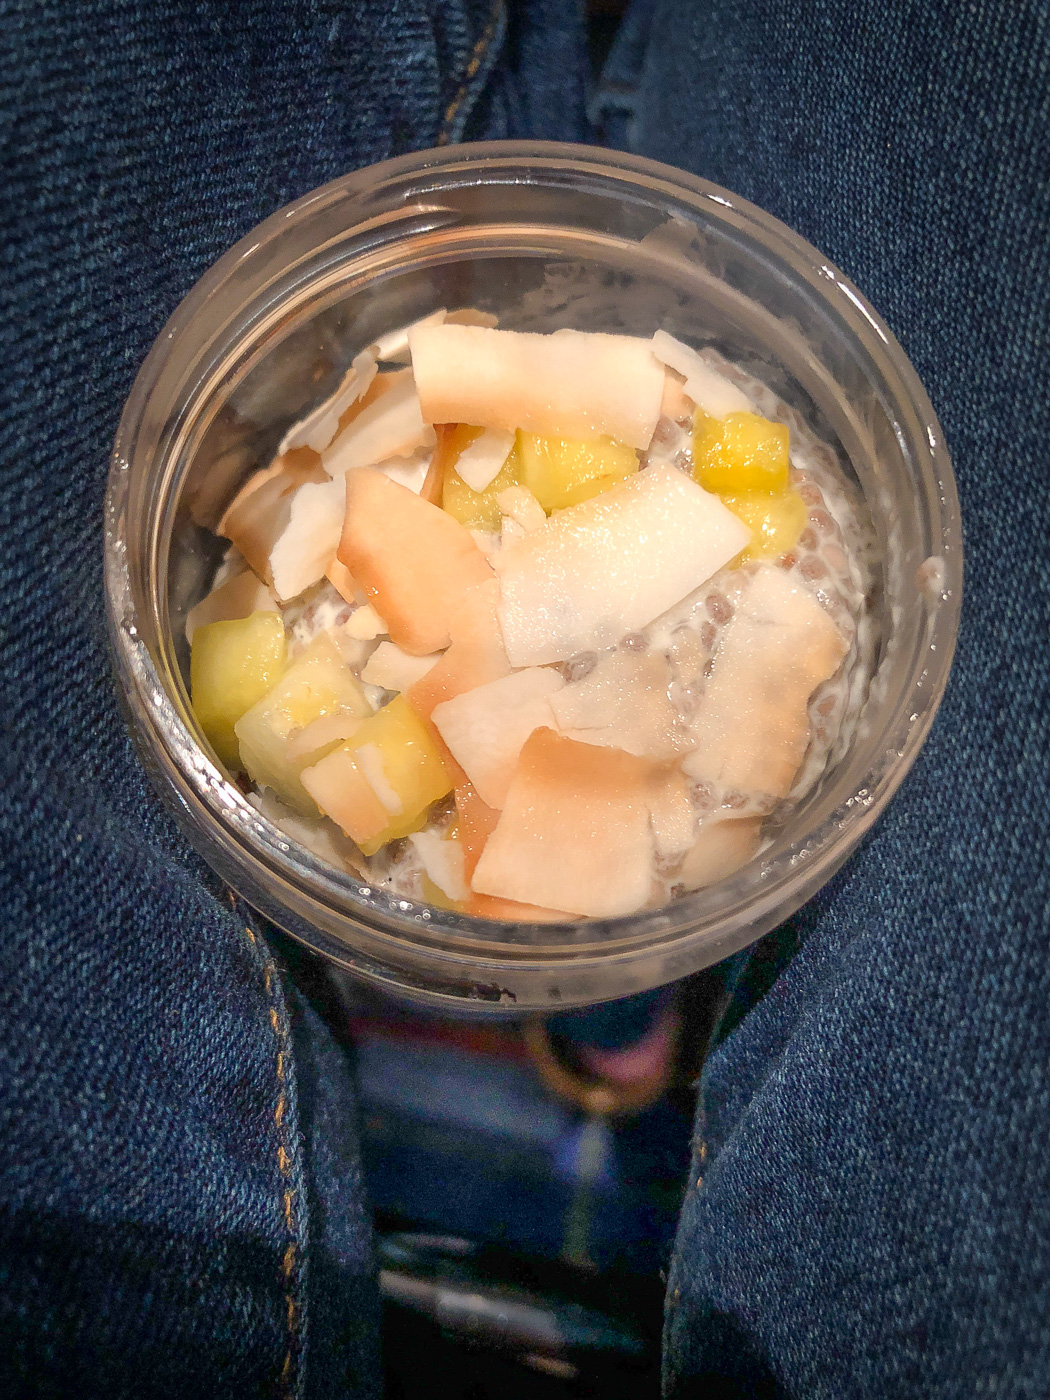 Container of Coconut Chia Pudding on lap